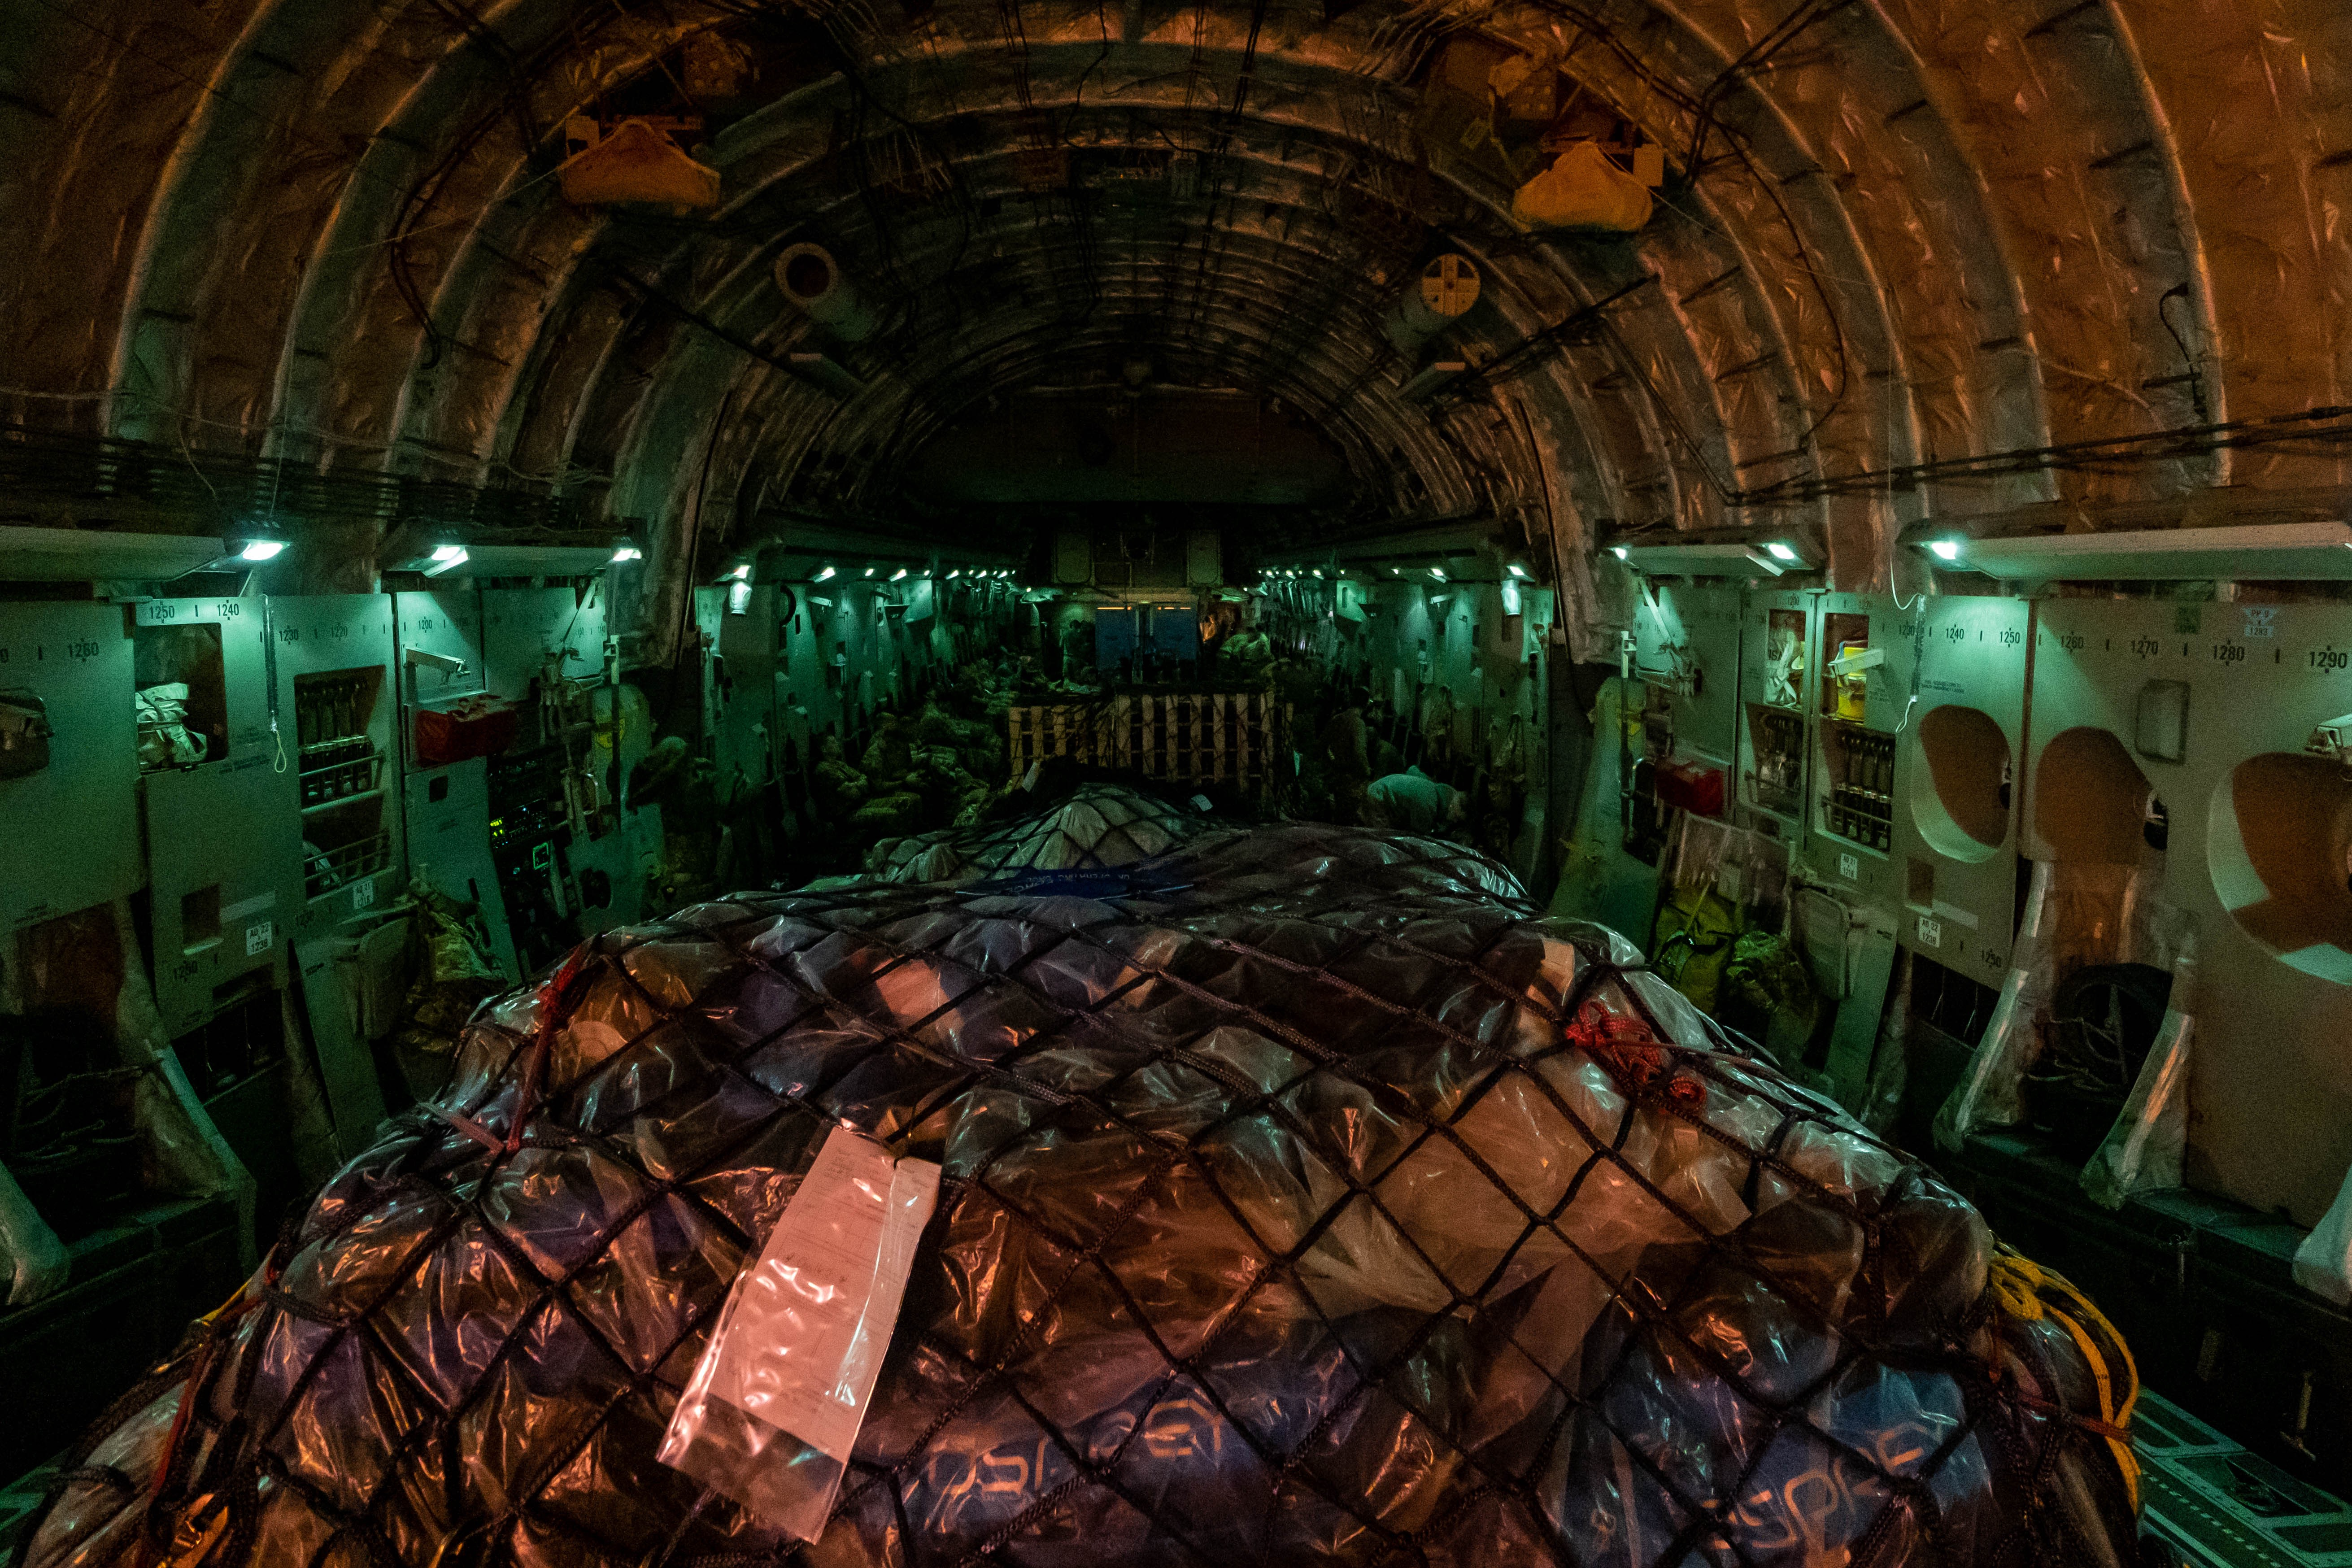 Personnel and freight on board a RAF aircraft destined for Kabul